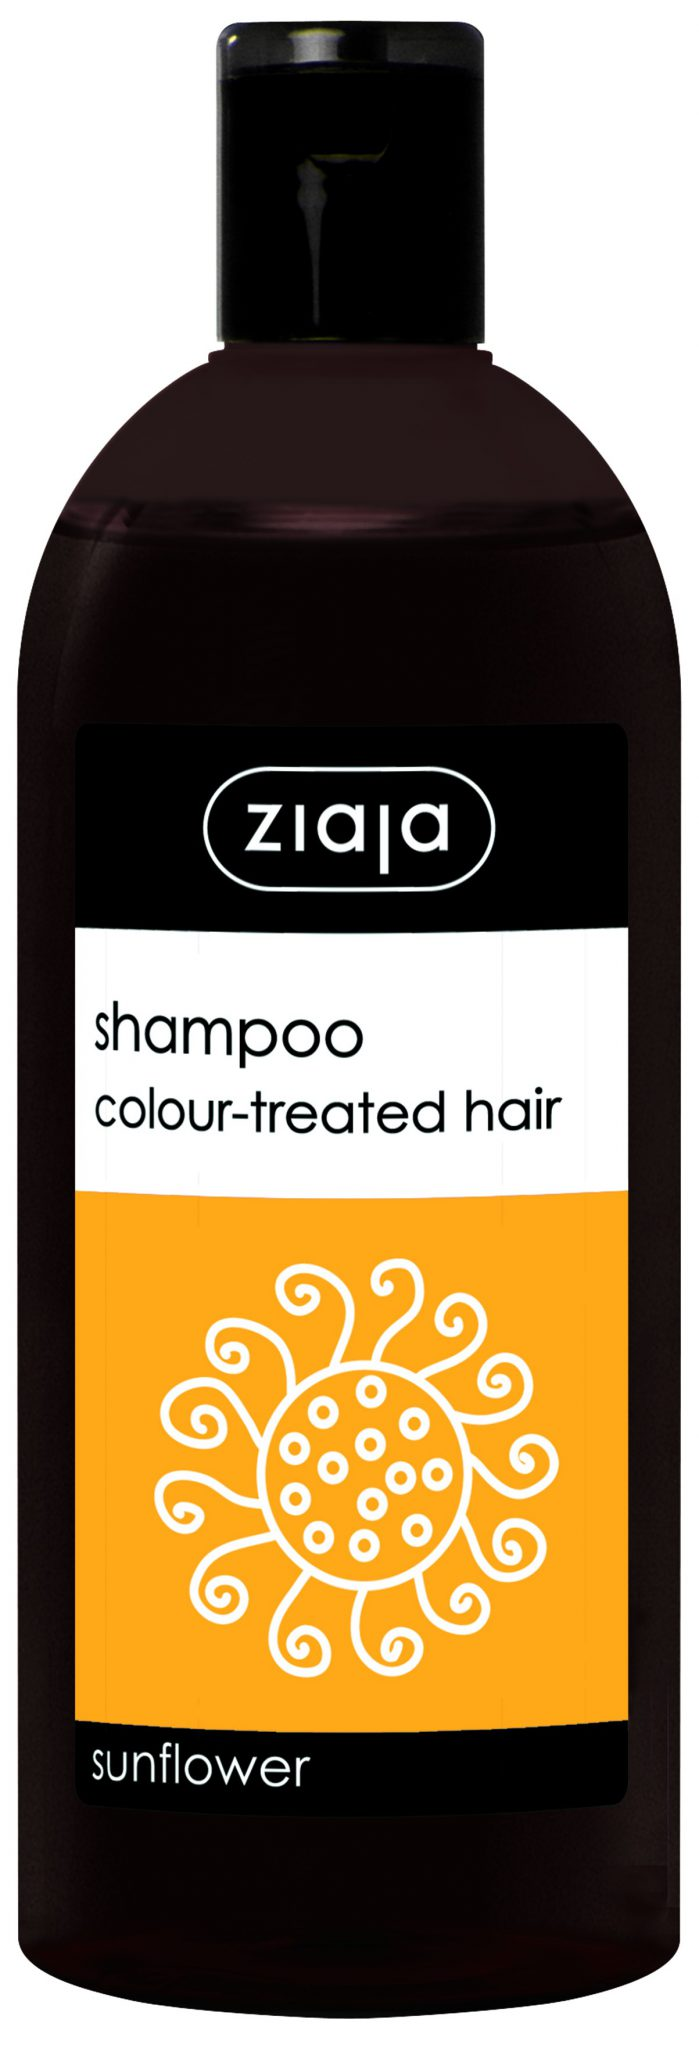 Ziaja SUNFLOWER SHAMPOO